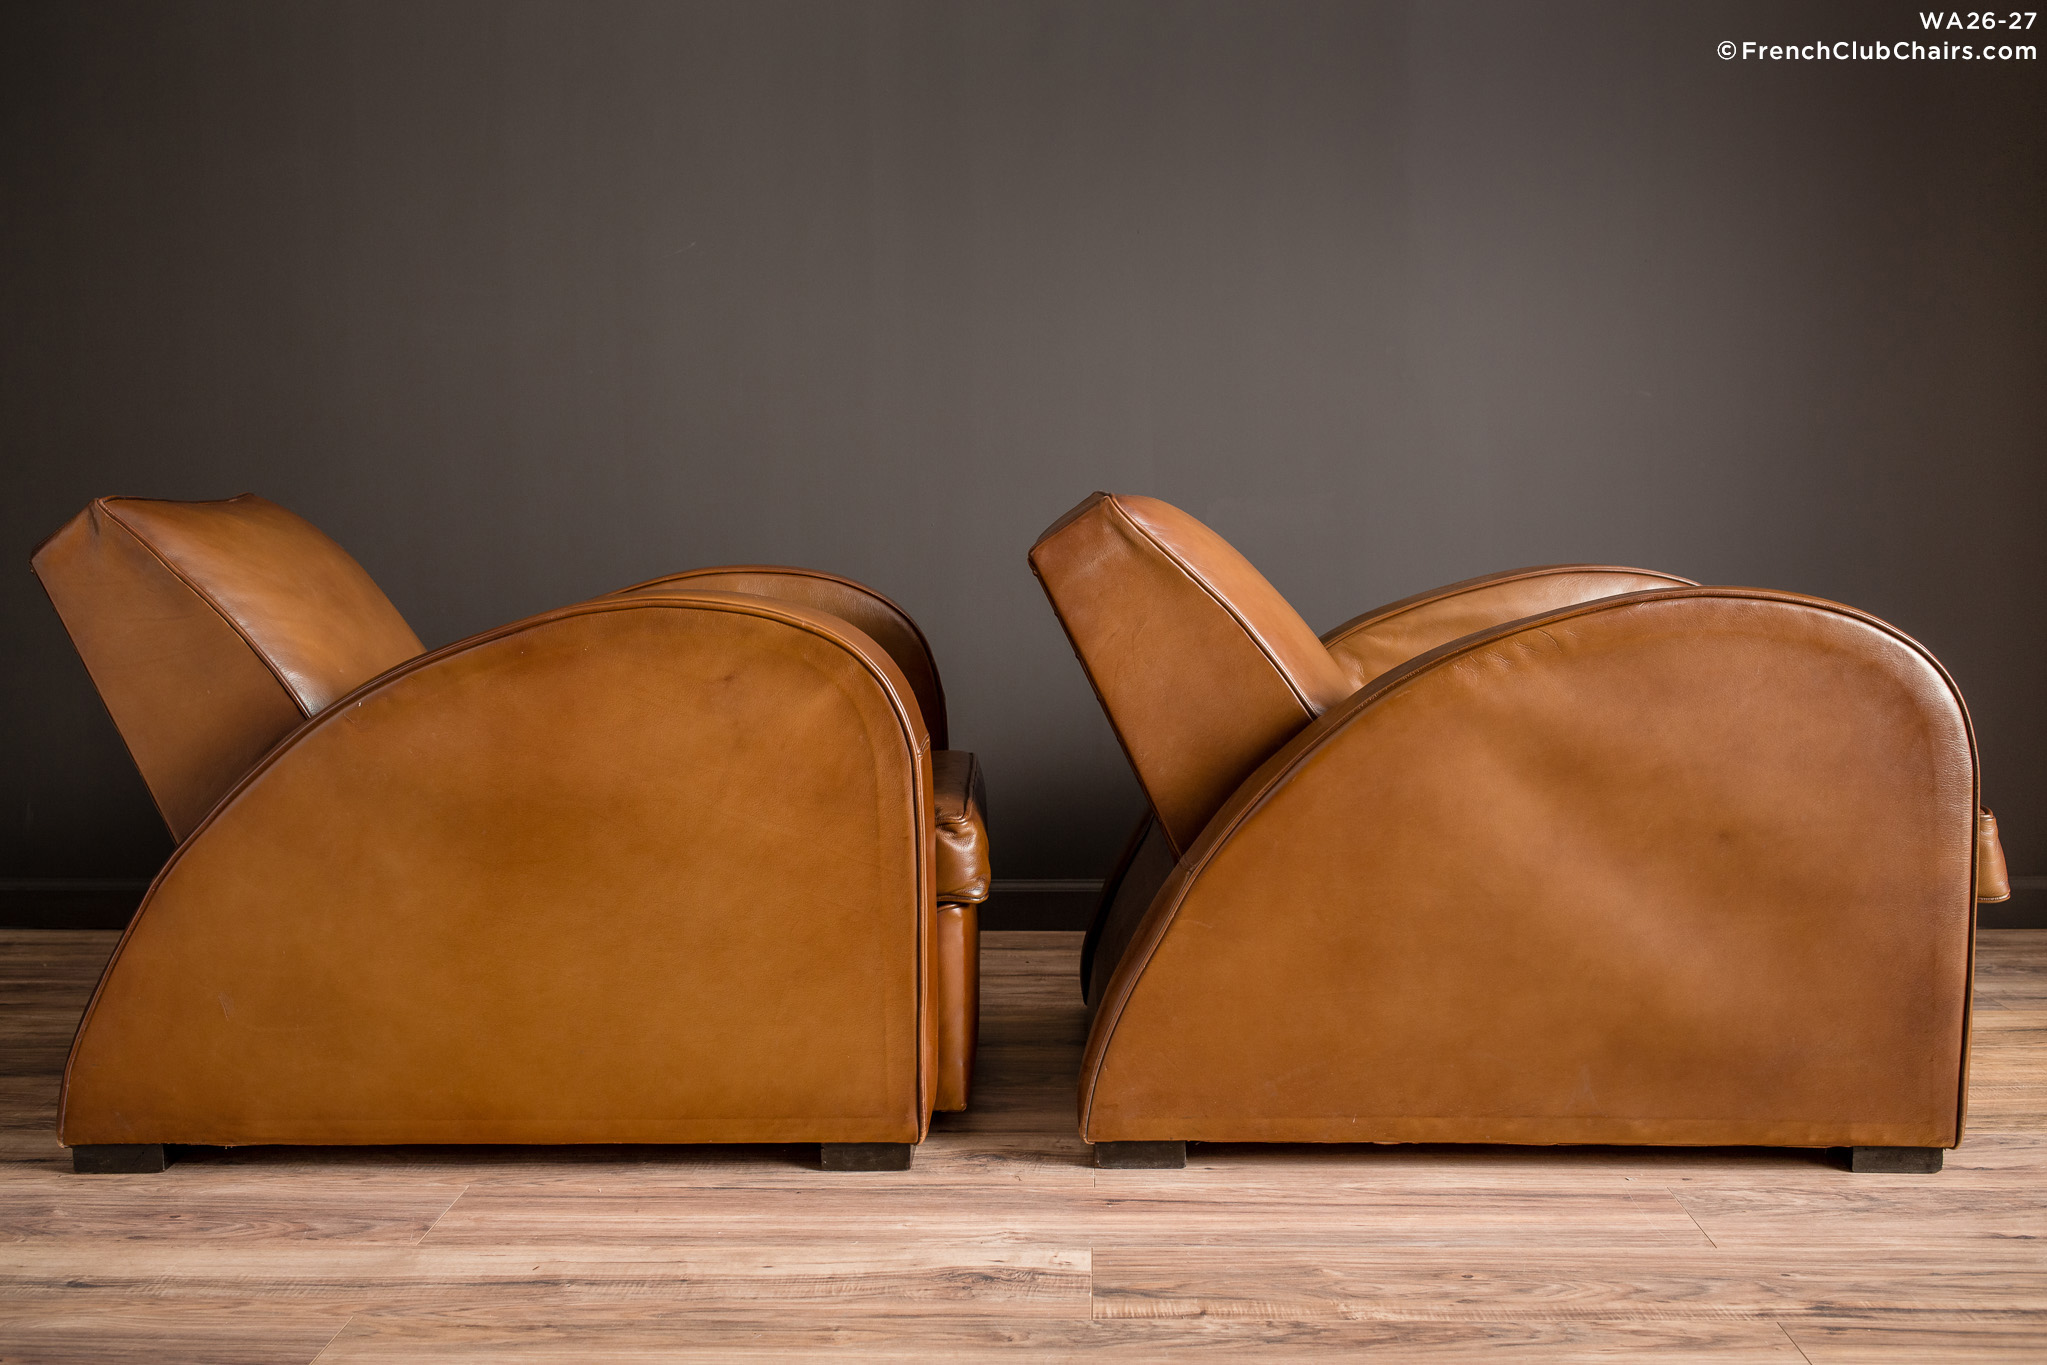 WA_26-27_Streamline_Classic_Square_Pair_R_3RT-v01-williams-antiks-leather-french-club-chair-wa_fcccom